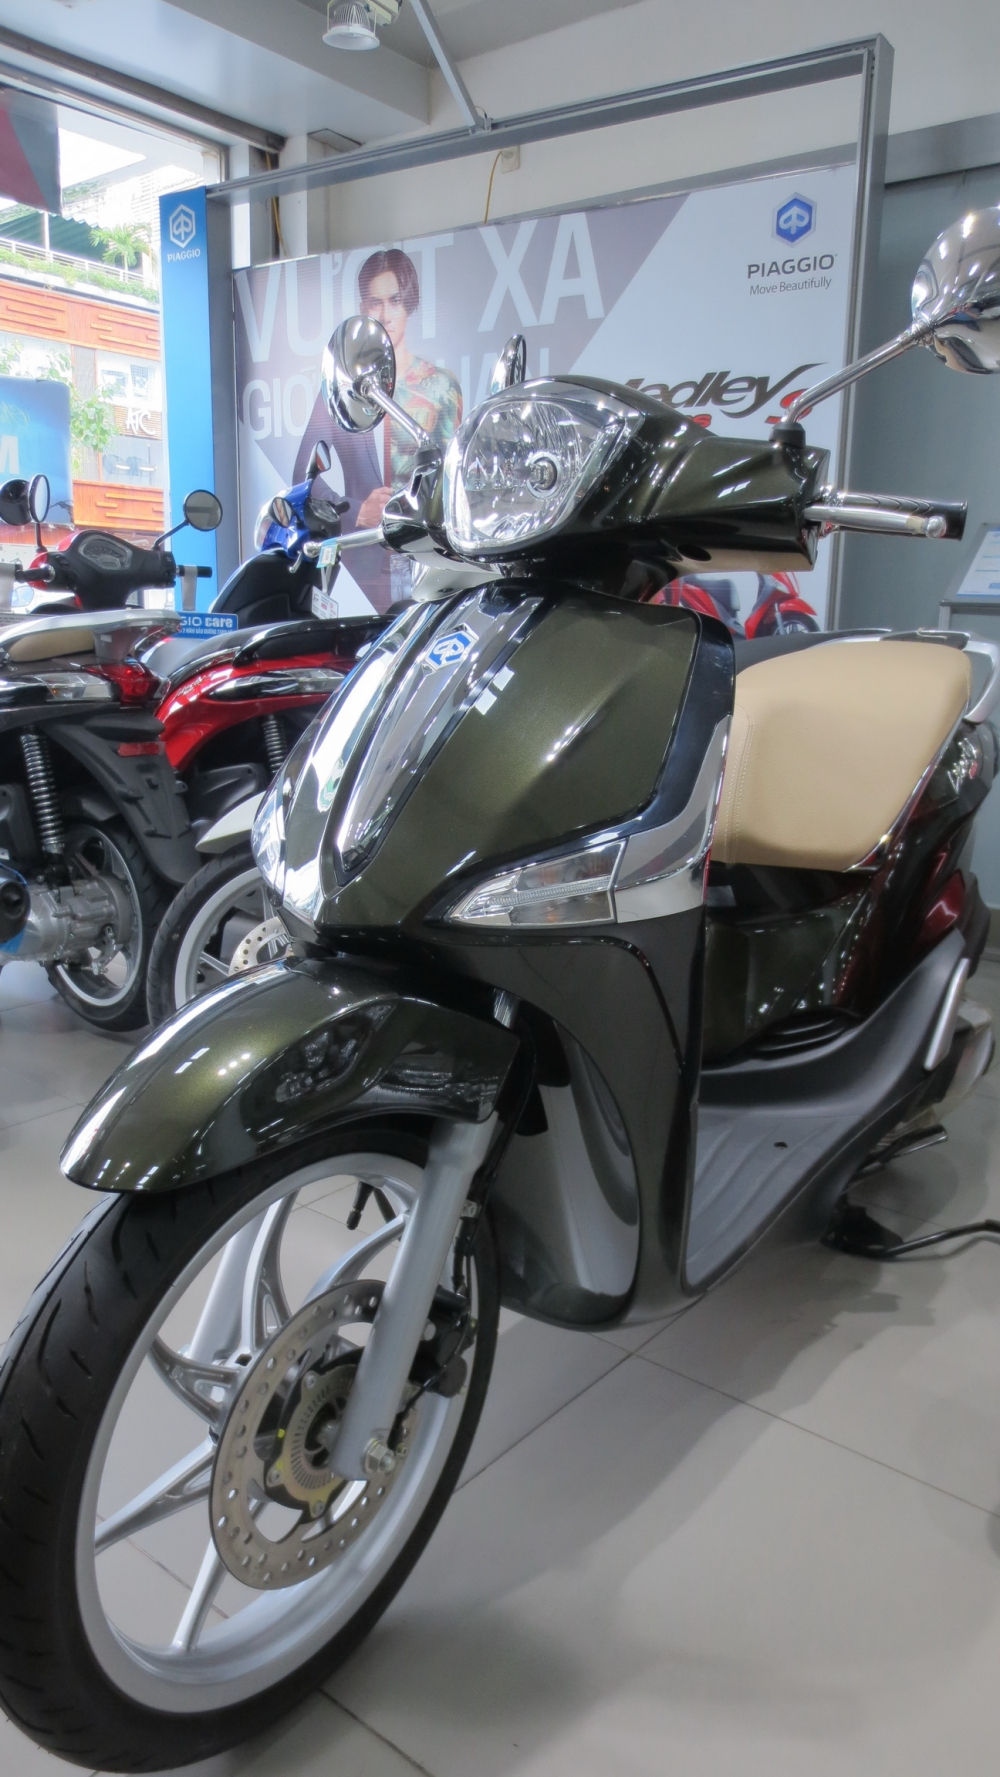 VESPA chinh hang gia tot nhat Update lien tuc - 35